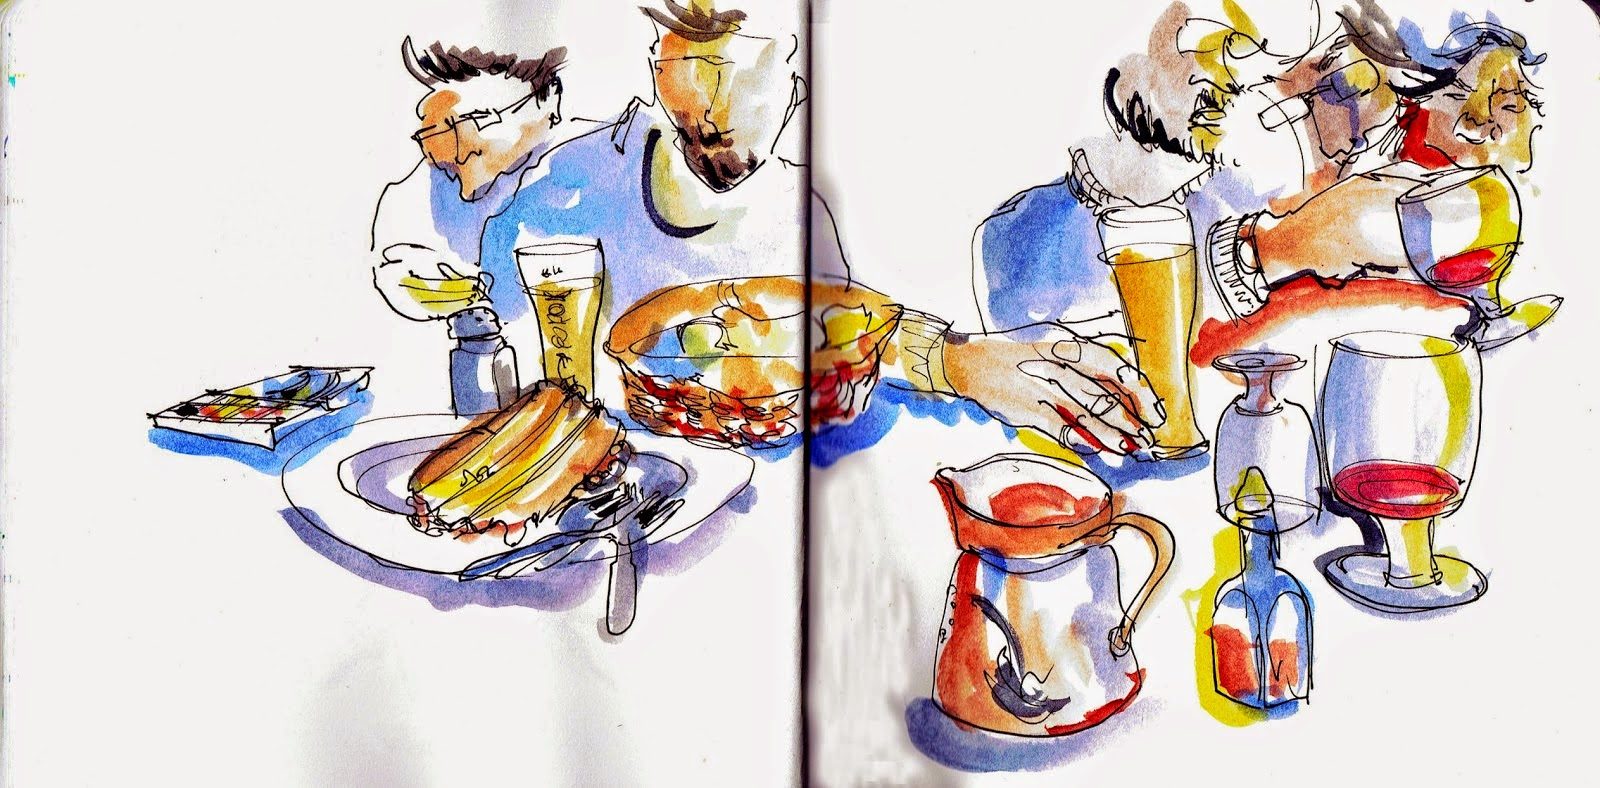 http://urbansketchers-portugal.blogspot.pt/2015/03/workshop-inma-serrano-fasvs.html